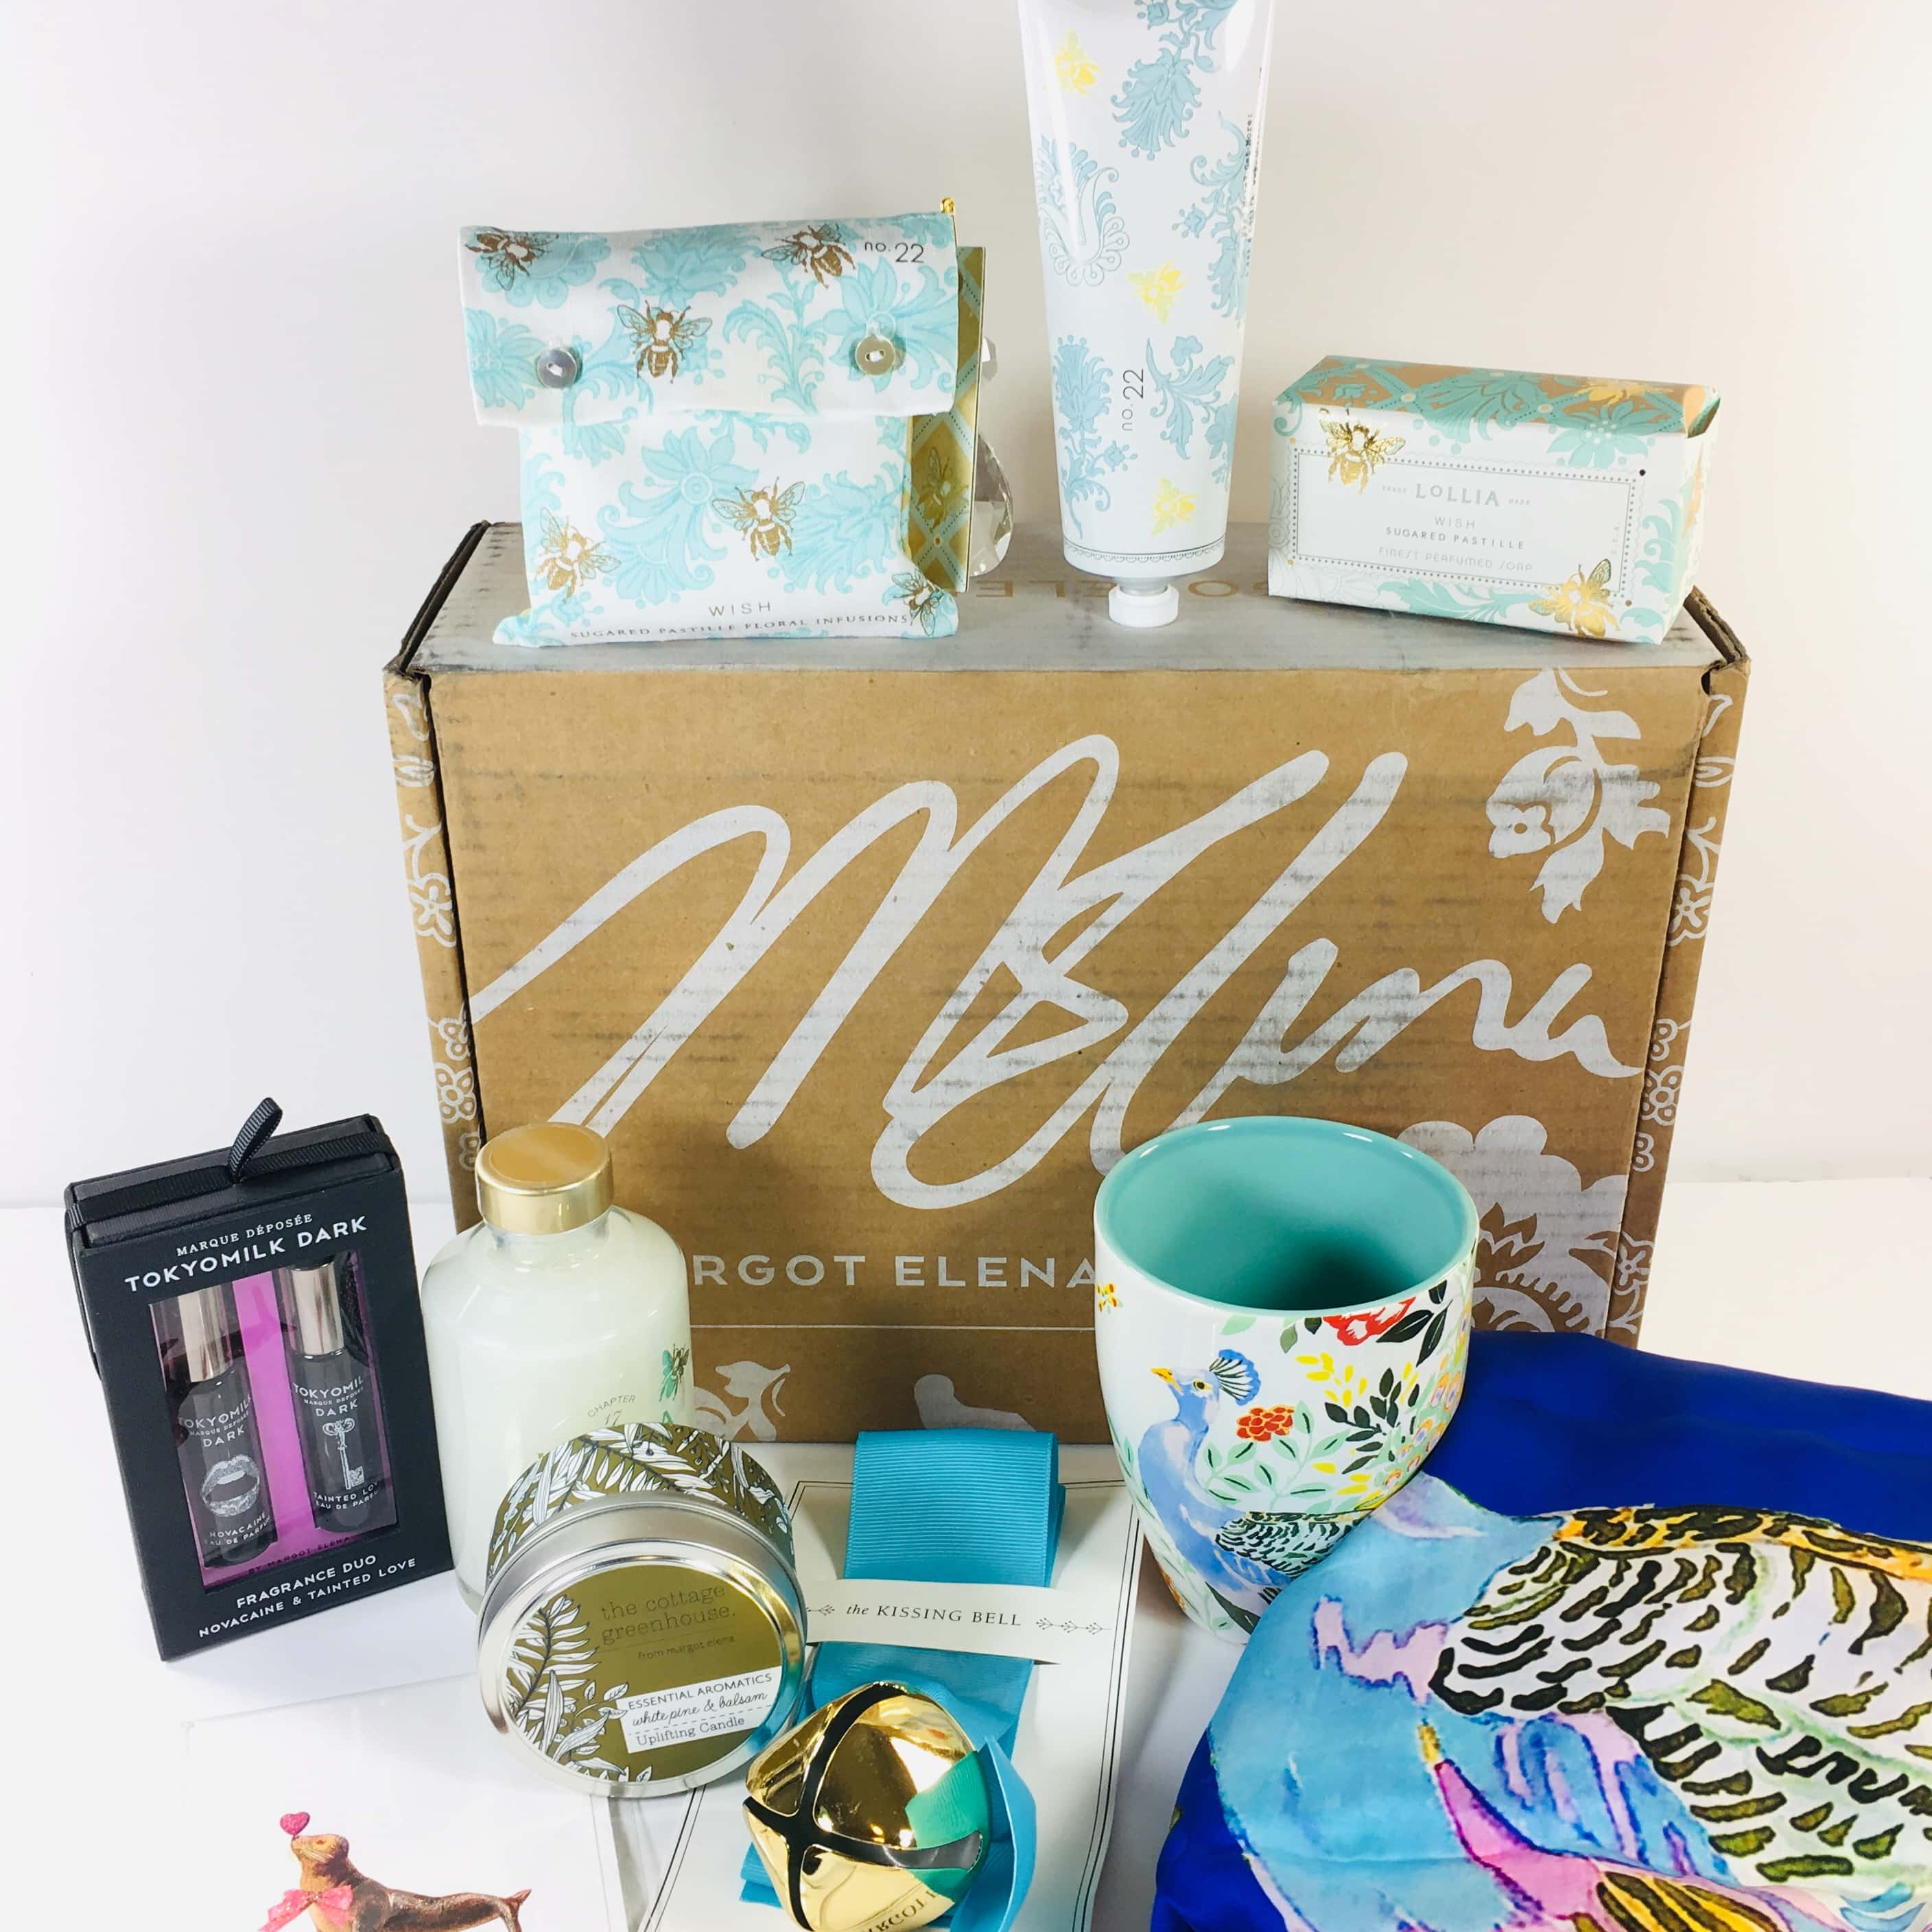 Margot Elena Winter 2018 Discovery Box Review